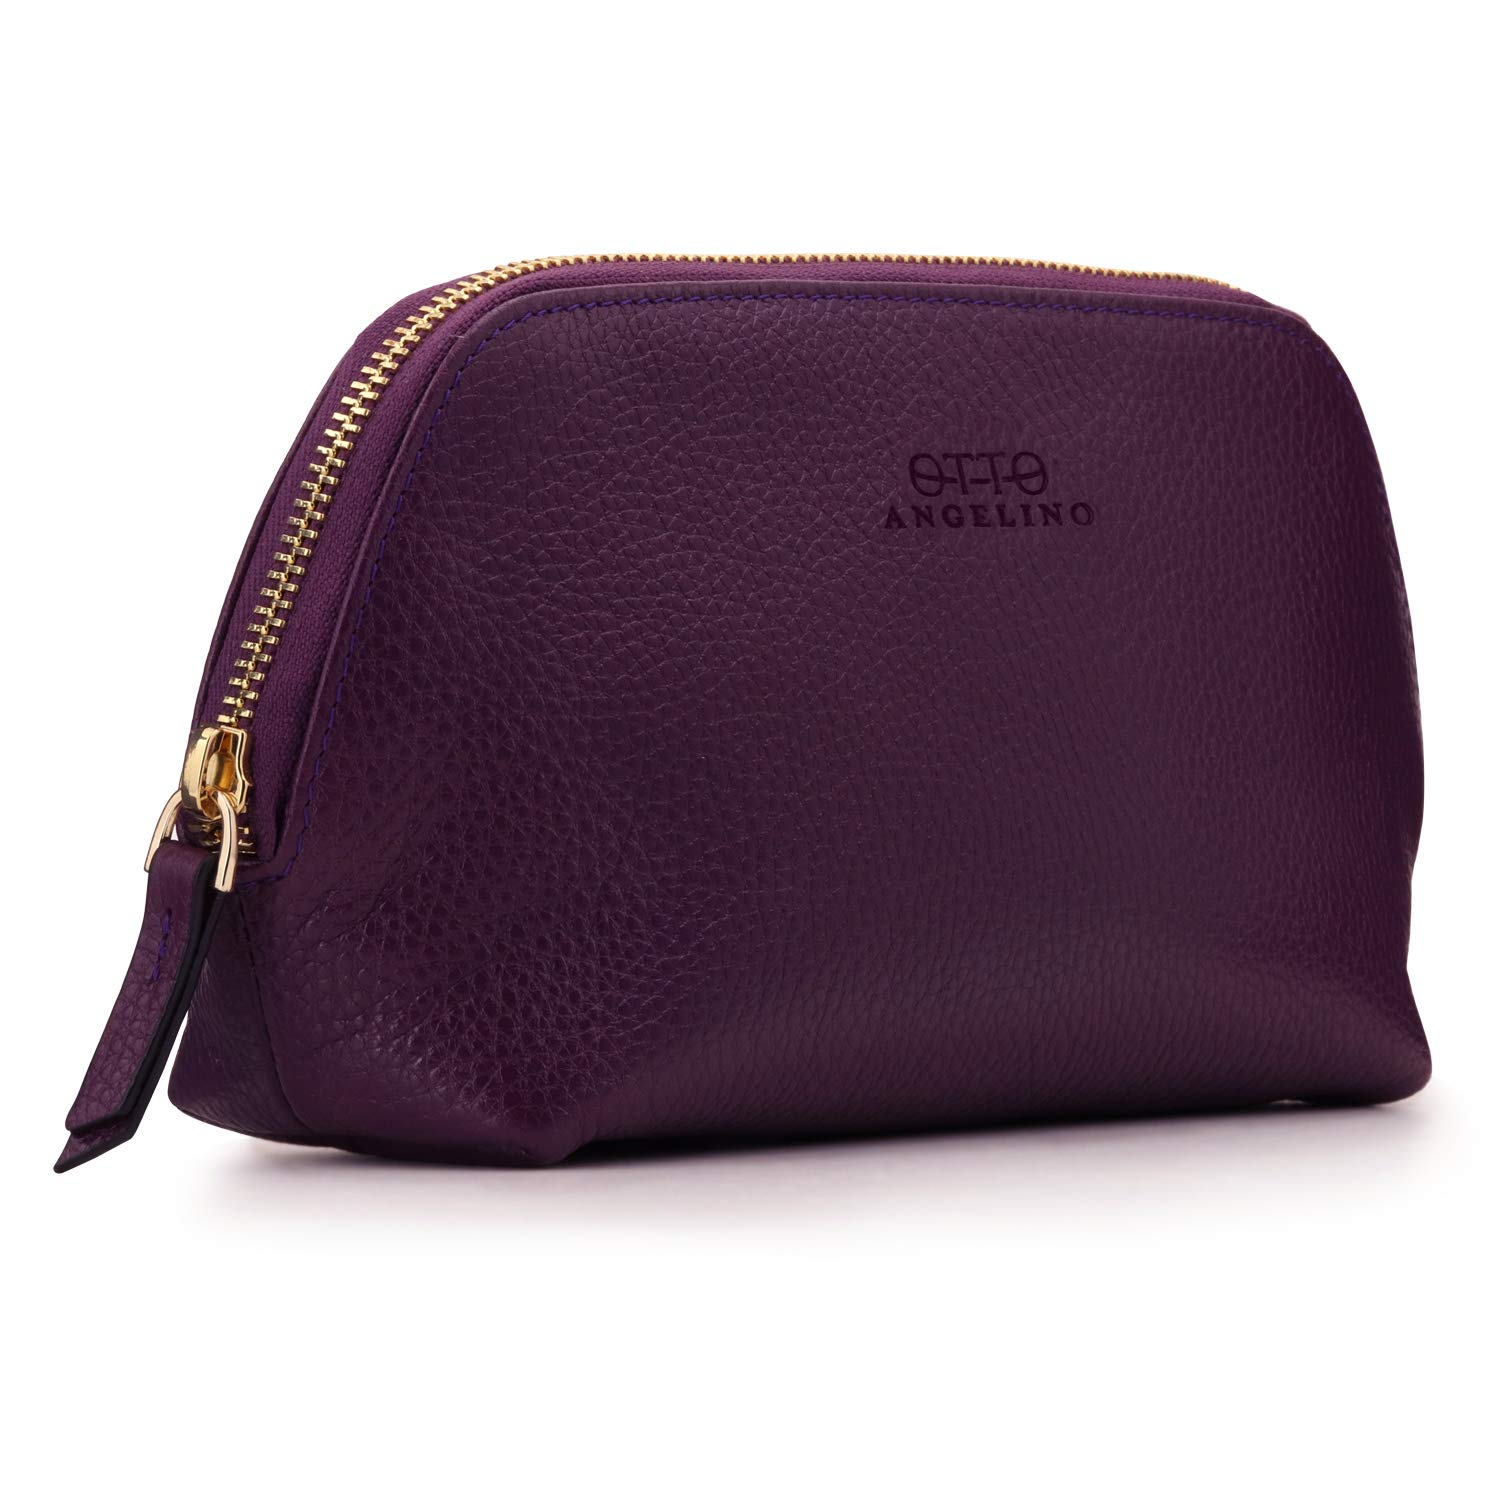 Otto Angelino Genuine Leather Makeup Bag Cosmetic Pouch Travel Organizer Toiletry Clutch, Purple